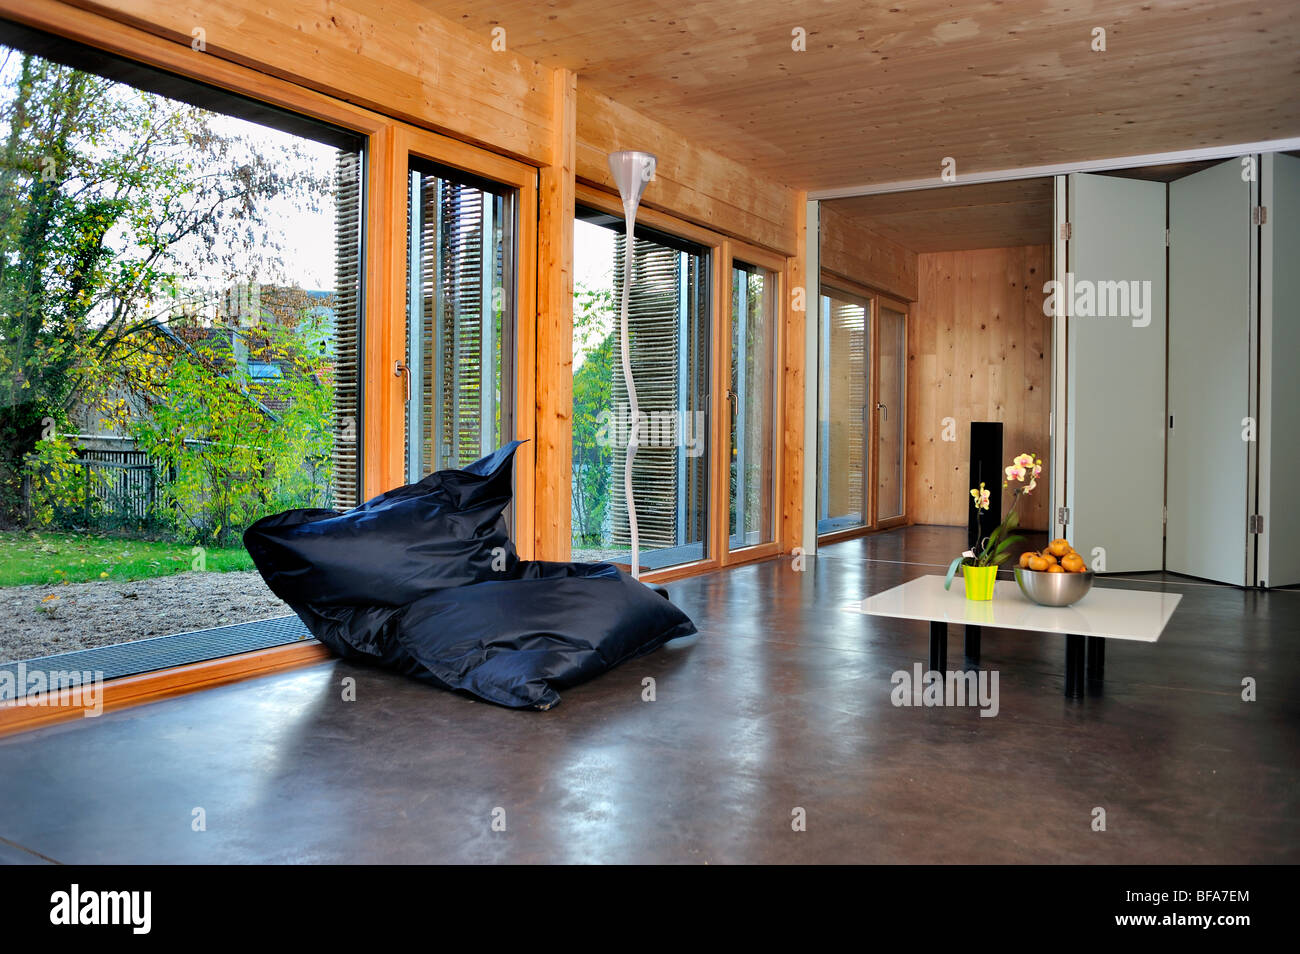 paris france green house zero energy consumption passive house stock photo royalty free. Black Bedroom Furniture Sets. Home Design Ideas